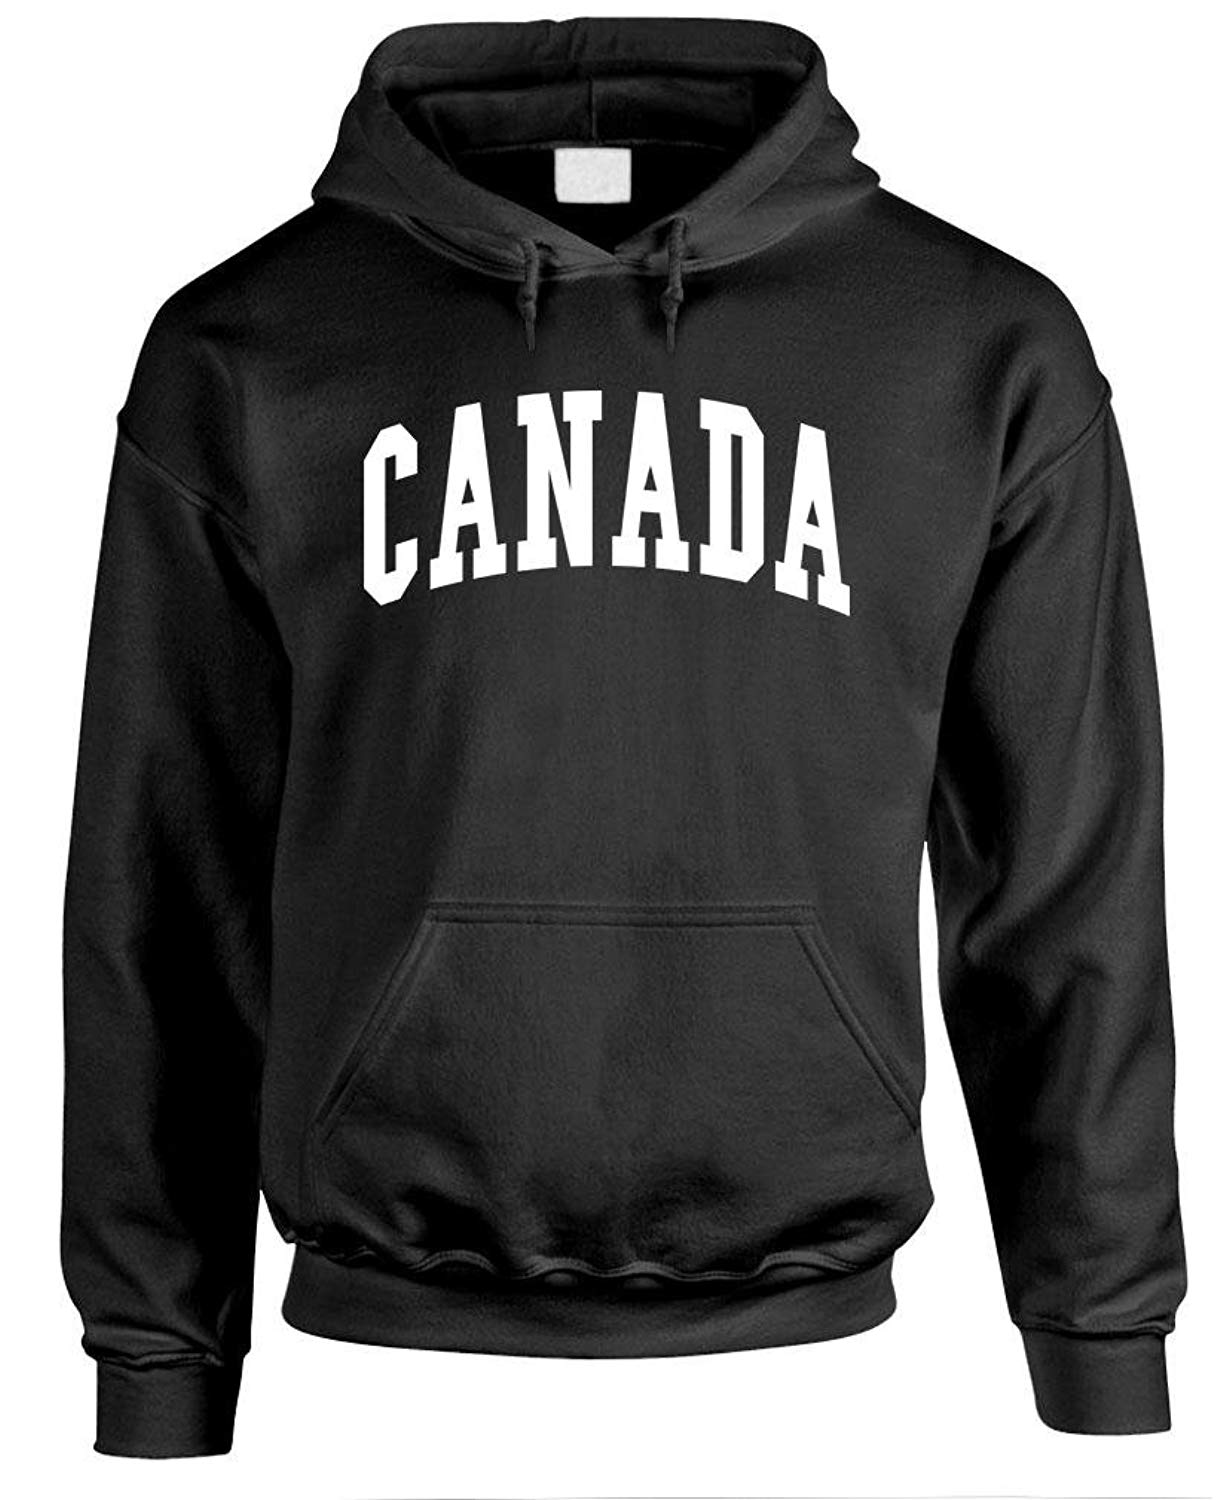 Canada Country Pride Homeland Nation S Pullover Shirts